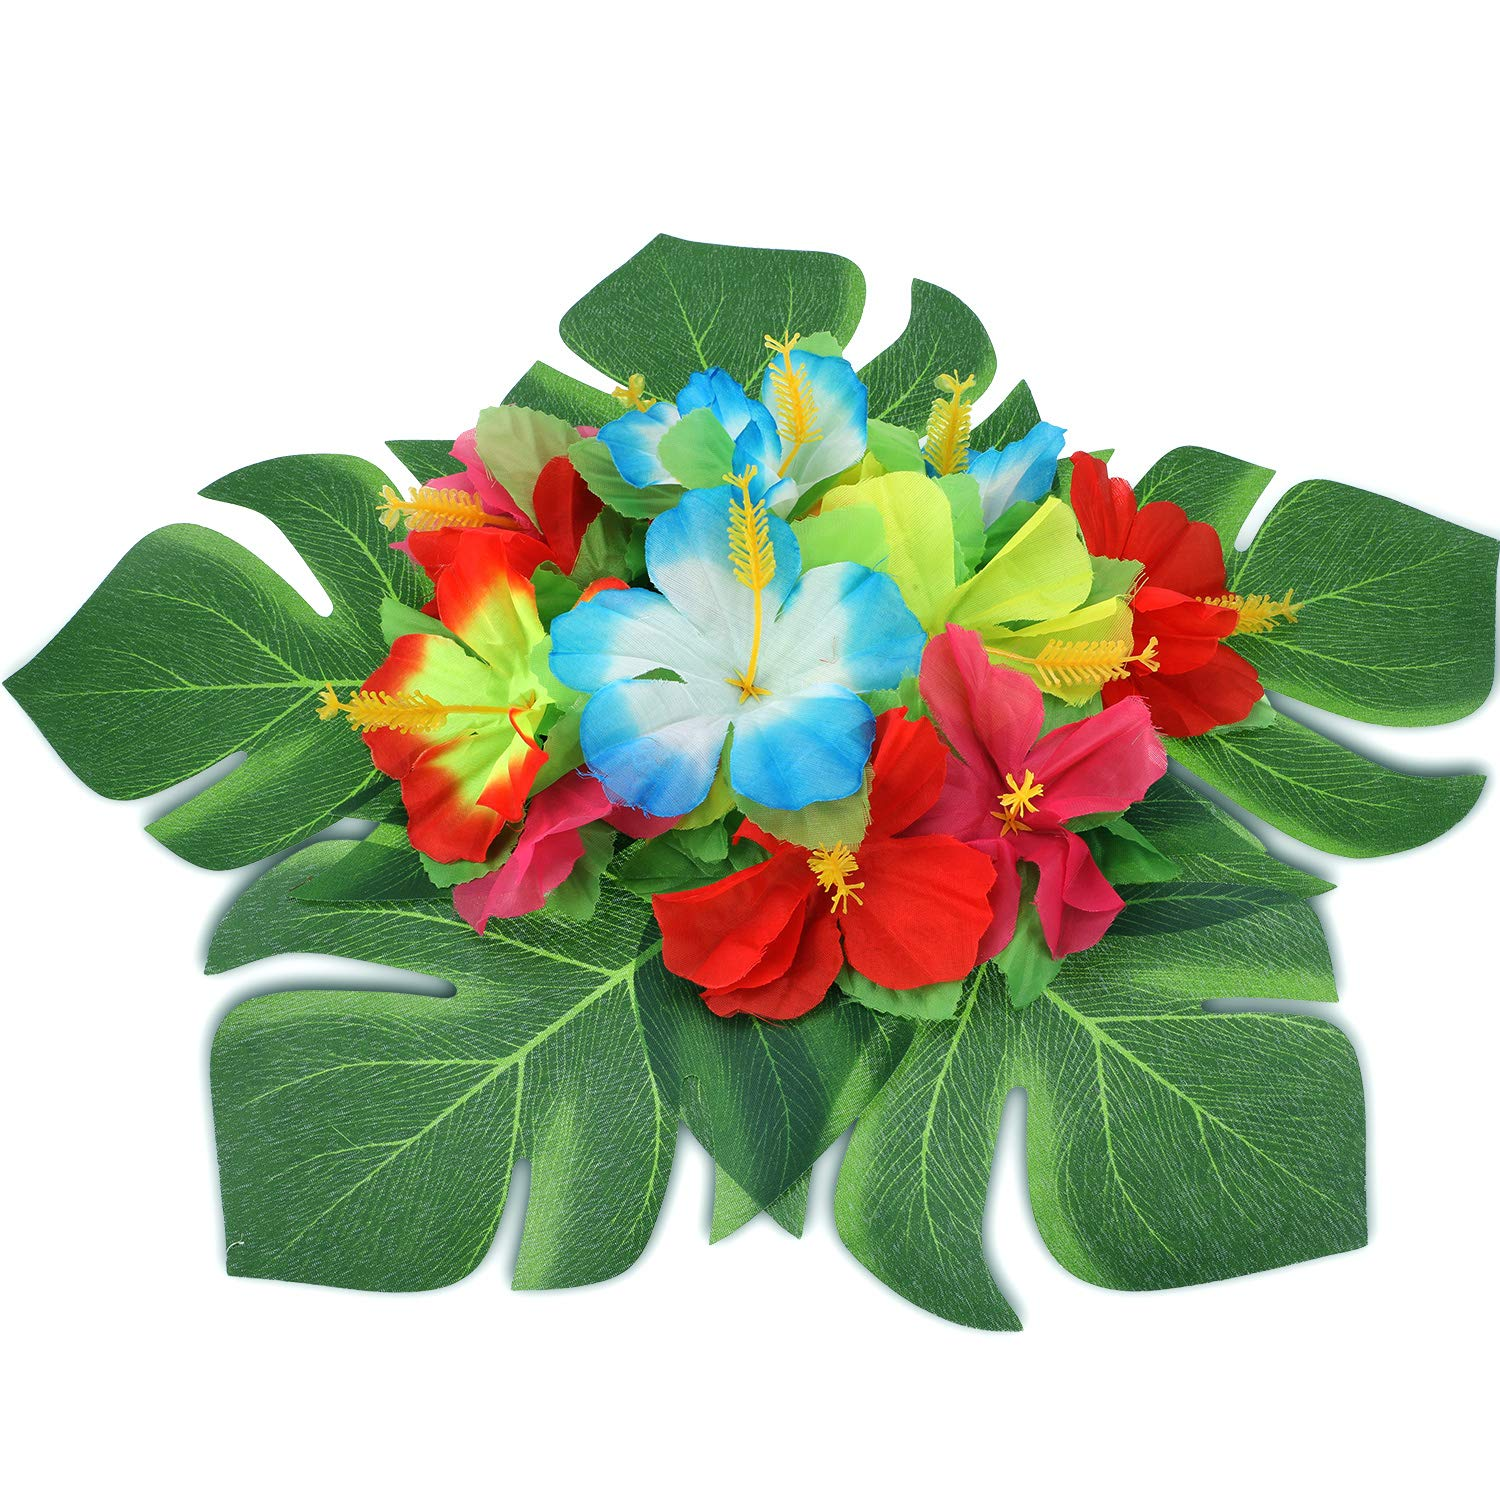 188 Pieces Hawaiian Luau Party Decorations,Include 30 Pieces Tropical Palm Leaves, 30 Pieces Hibiscus Flowers, 4 Pieces Paper Pineapples, 24 Pieces Cupcake Toppers, 50 Pieces 3D Fruit Straws, 50 Pieces Paper Umbrella by Zonon (Image #4)